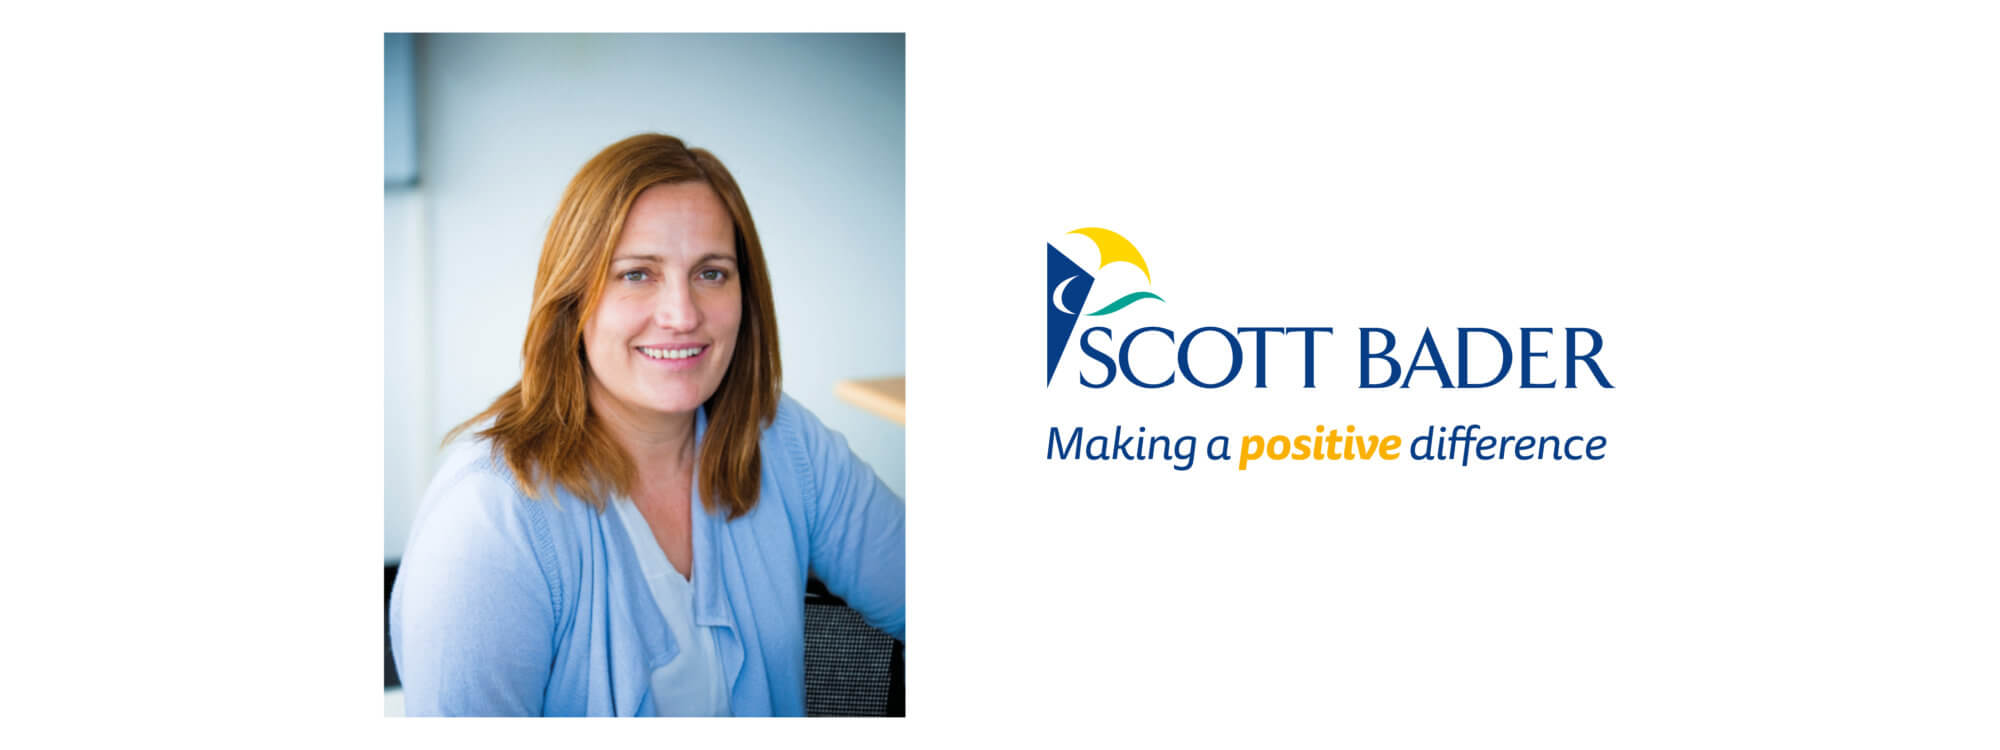 The Scott Bader Group Board appoints Debbie Baker as Non-Executive Director